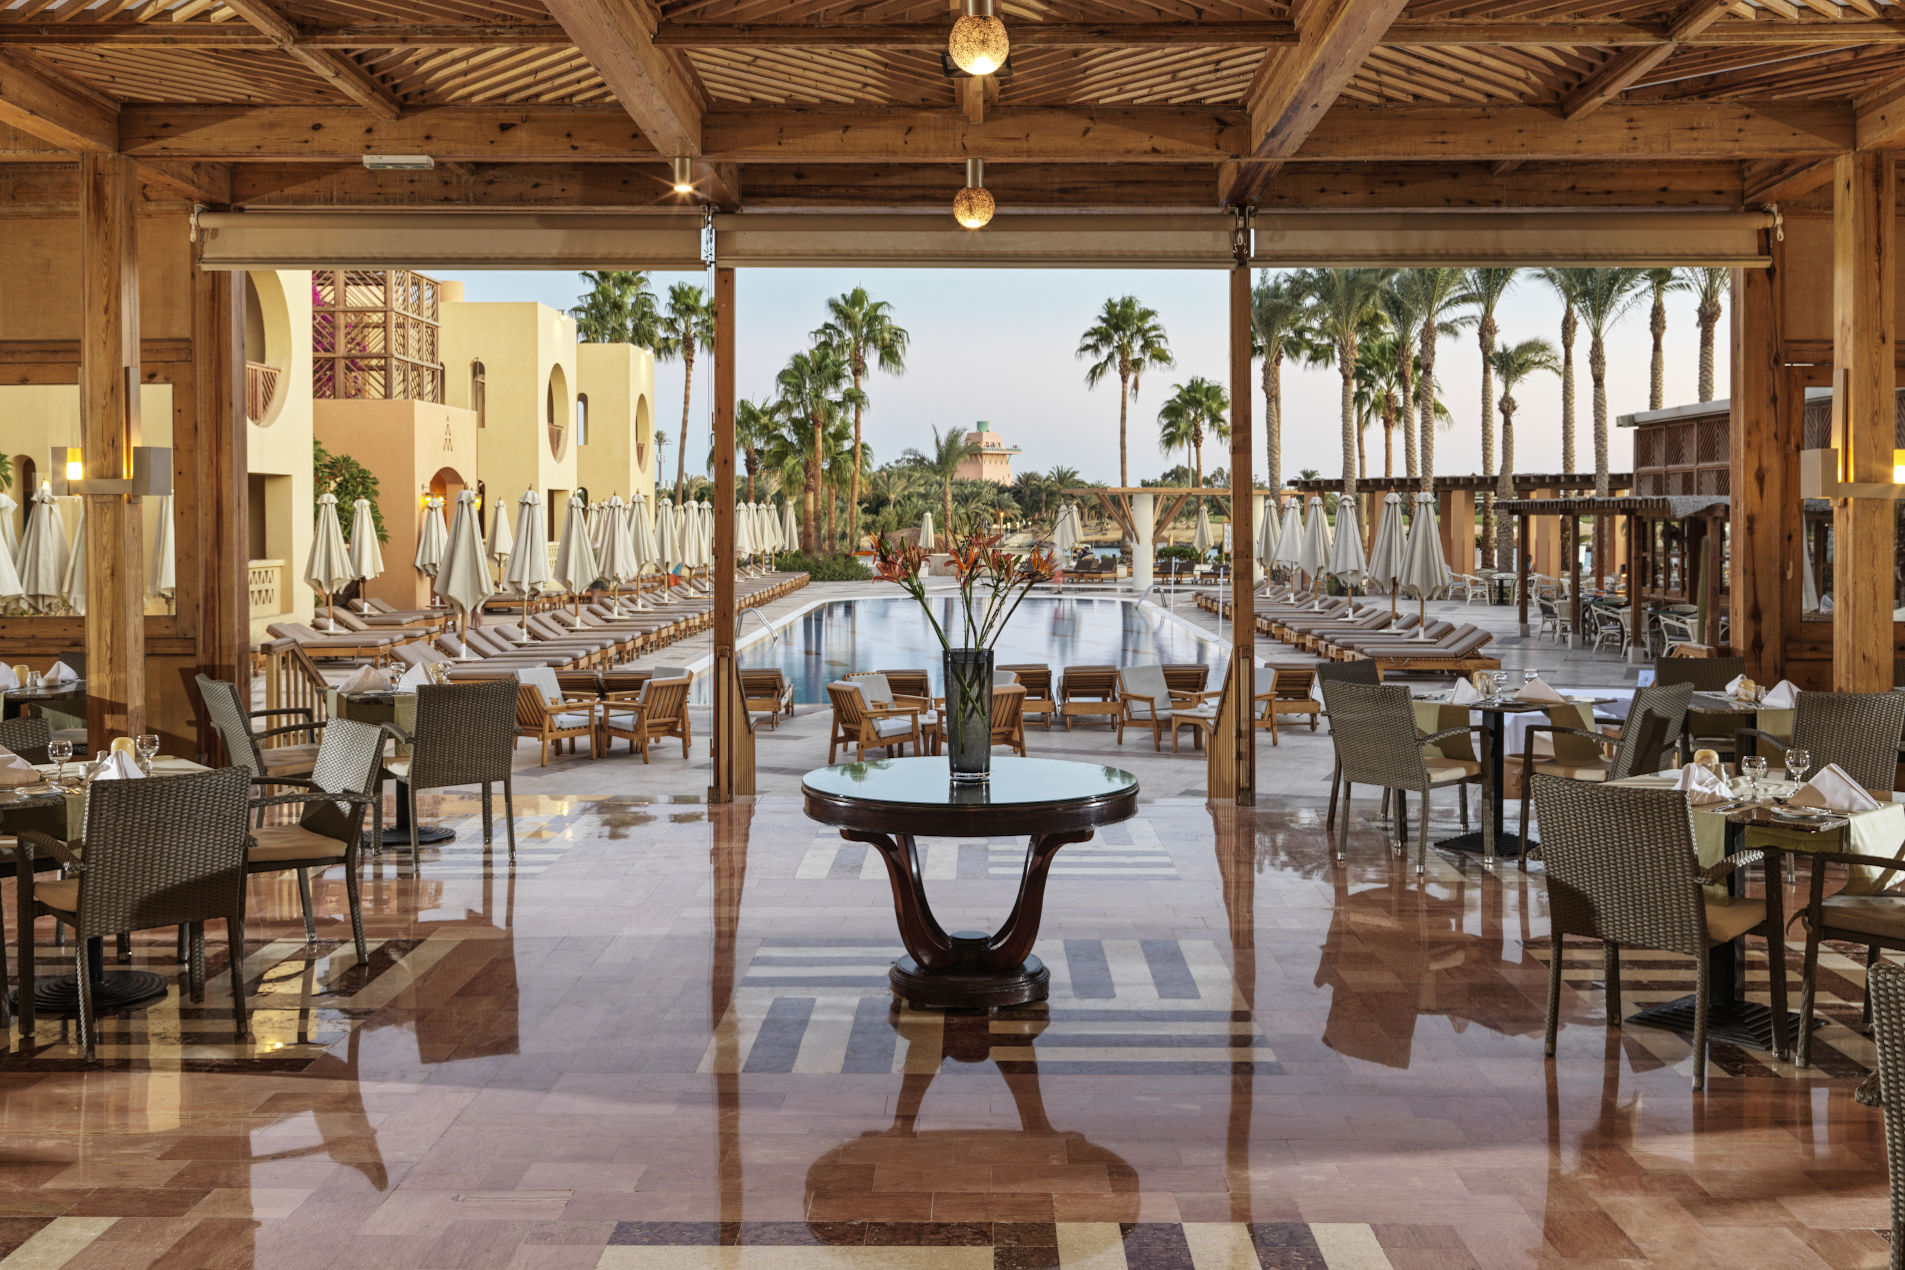 Fairways Restaurant of Steigenberger Golf Resort El Gouna, overlooking the hotel pool and scenic lagoon